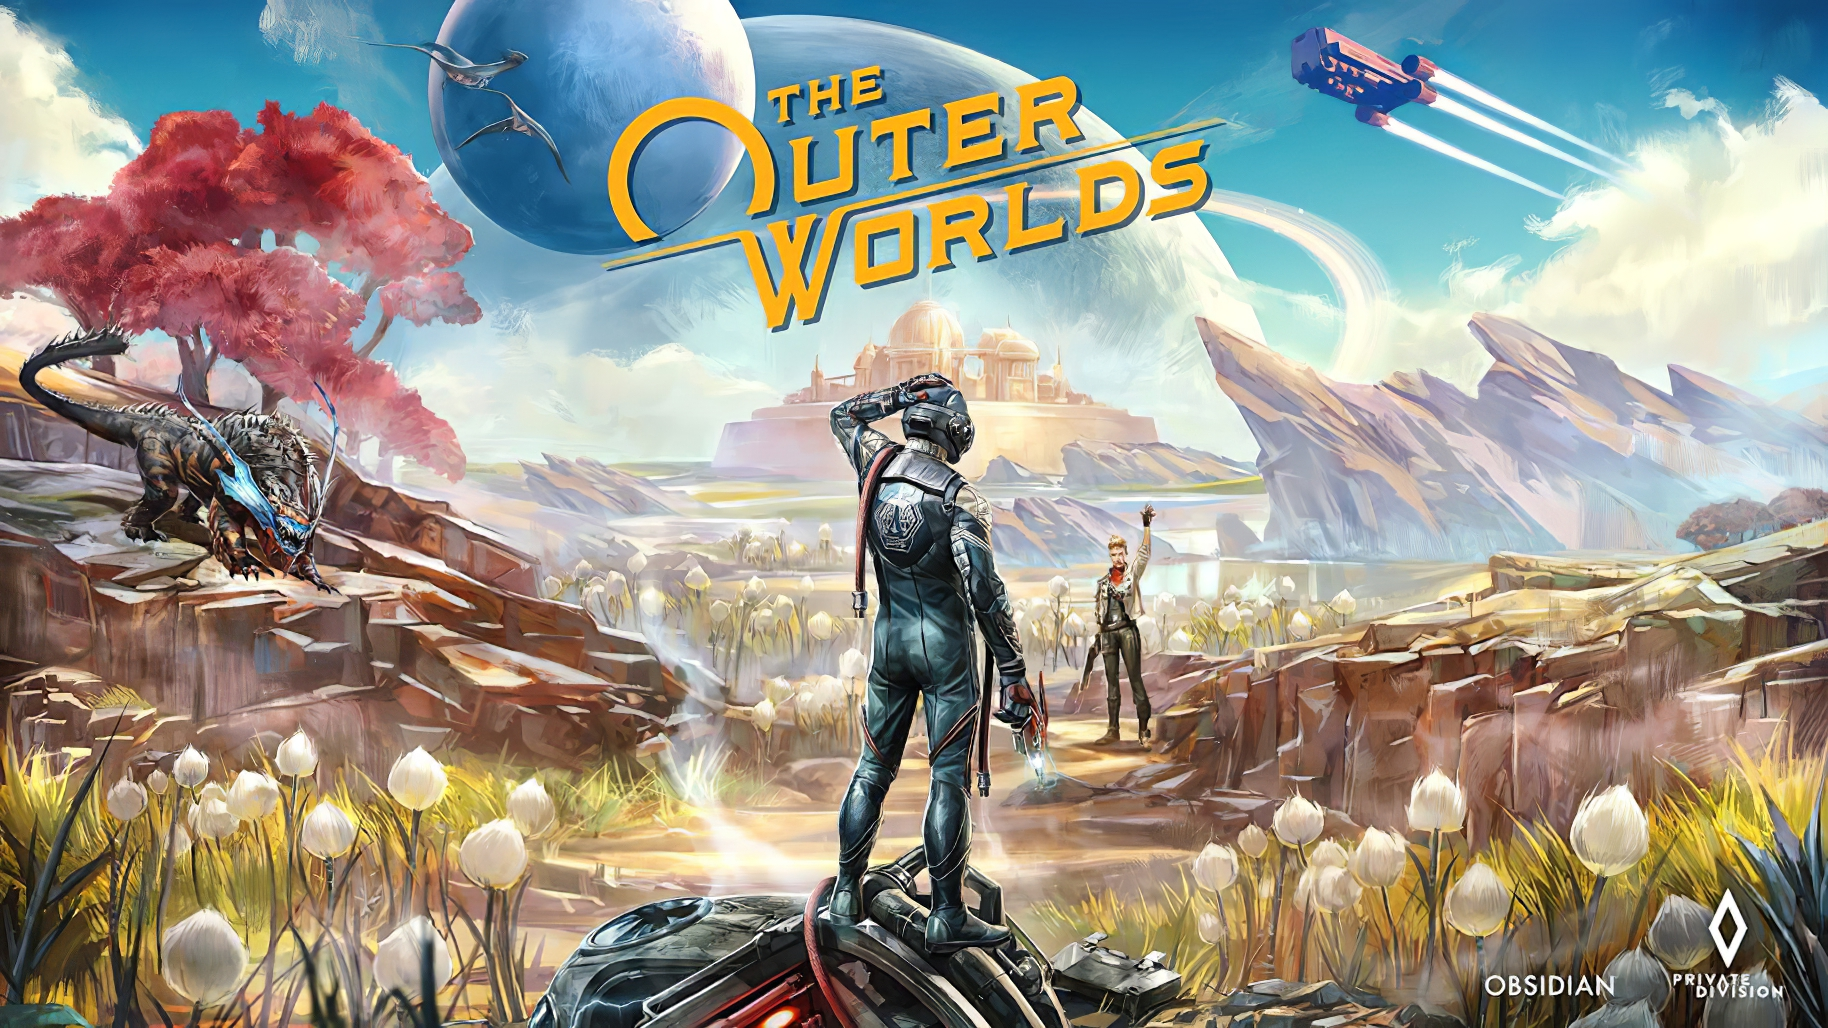 The Outer World